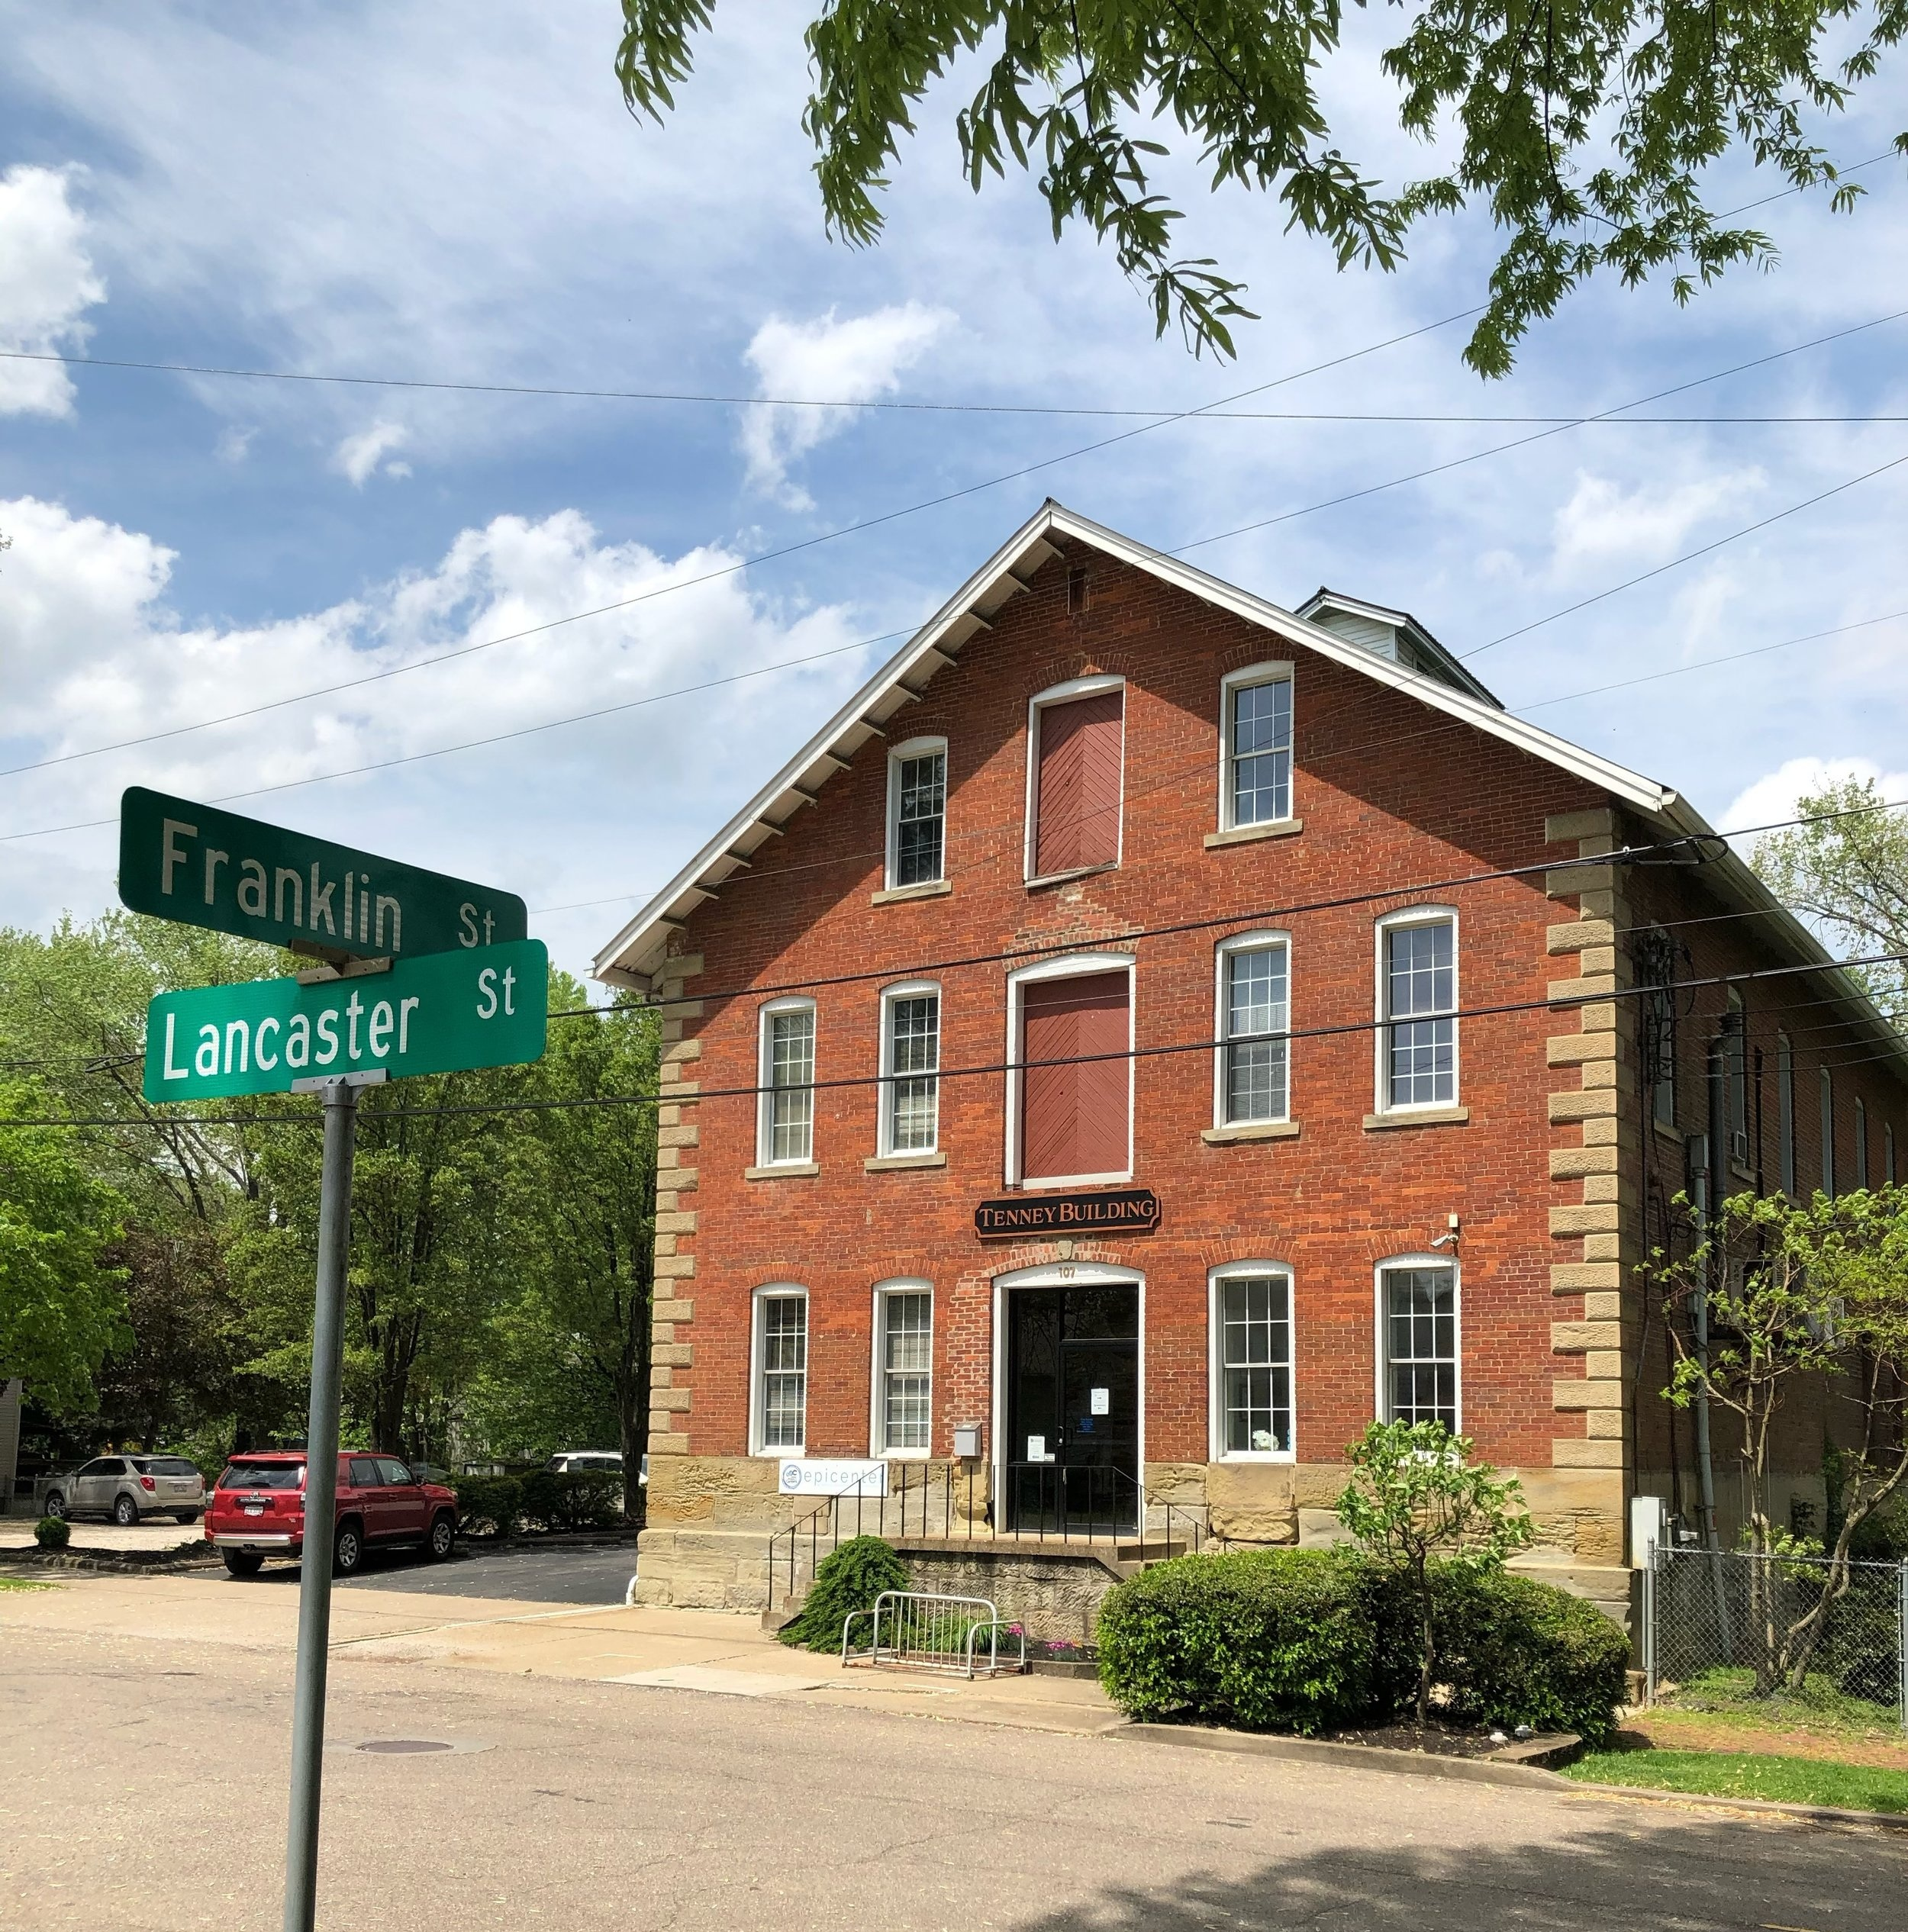 We are a part of the BB2C Epicenter at 107 Lancaster Street in Harmar Village. The Epicenter is at the intersection of Lancaster & Franklin Street. The Makerspace entrance is on the left side of the building at the top of the ramp.